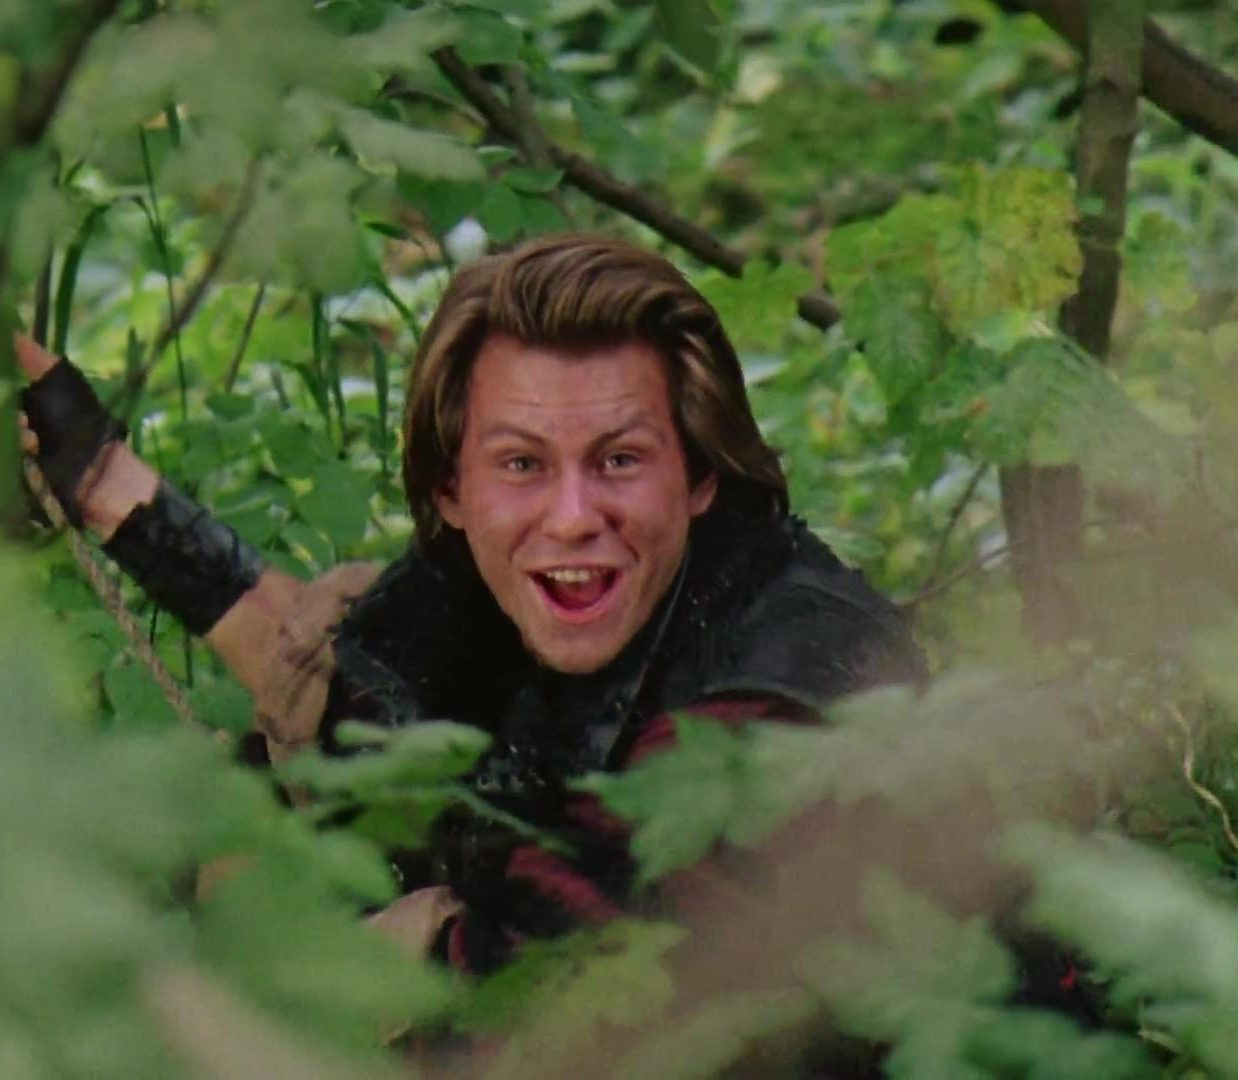 Robin Hood Prince of Thieves 806612652 large e1619770048620 20 Things You Probably Didn't Know About Christian Slater